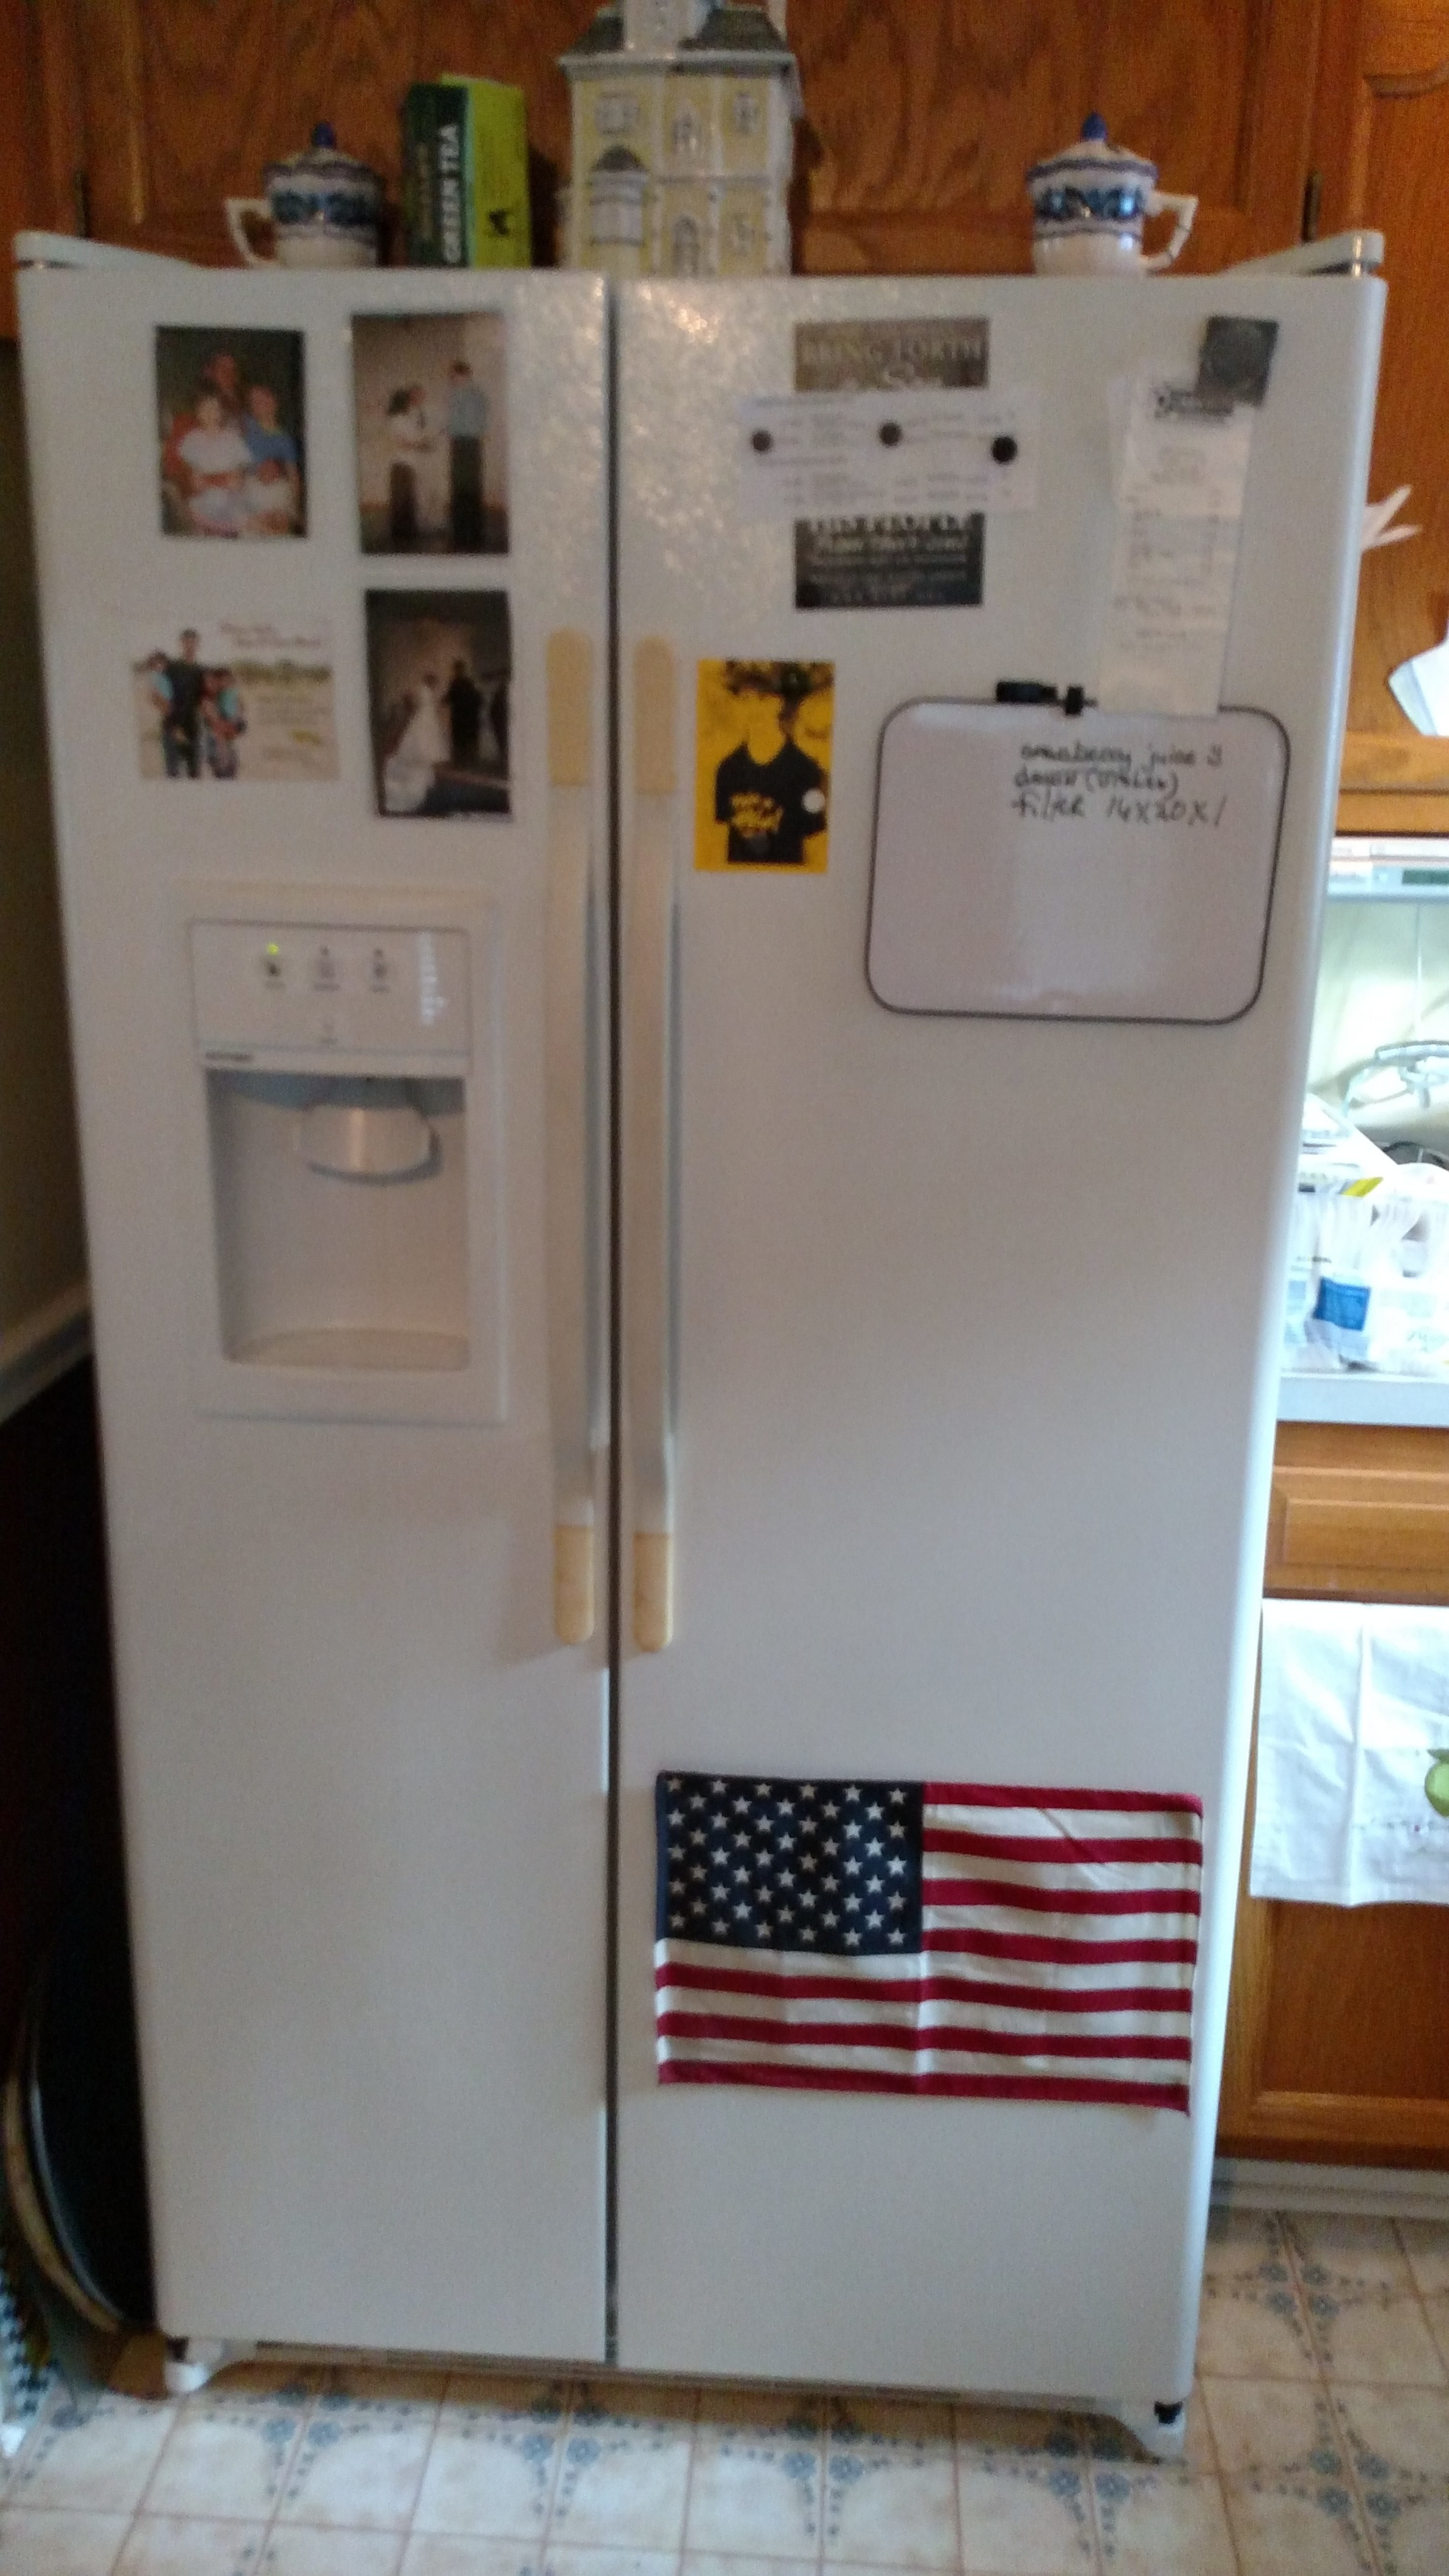 Top 25 Complaints And Reviews About Hotpoint Refrigerator